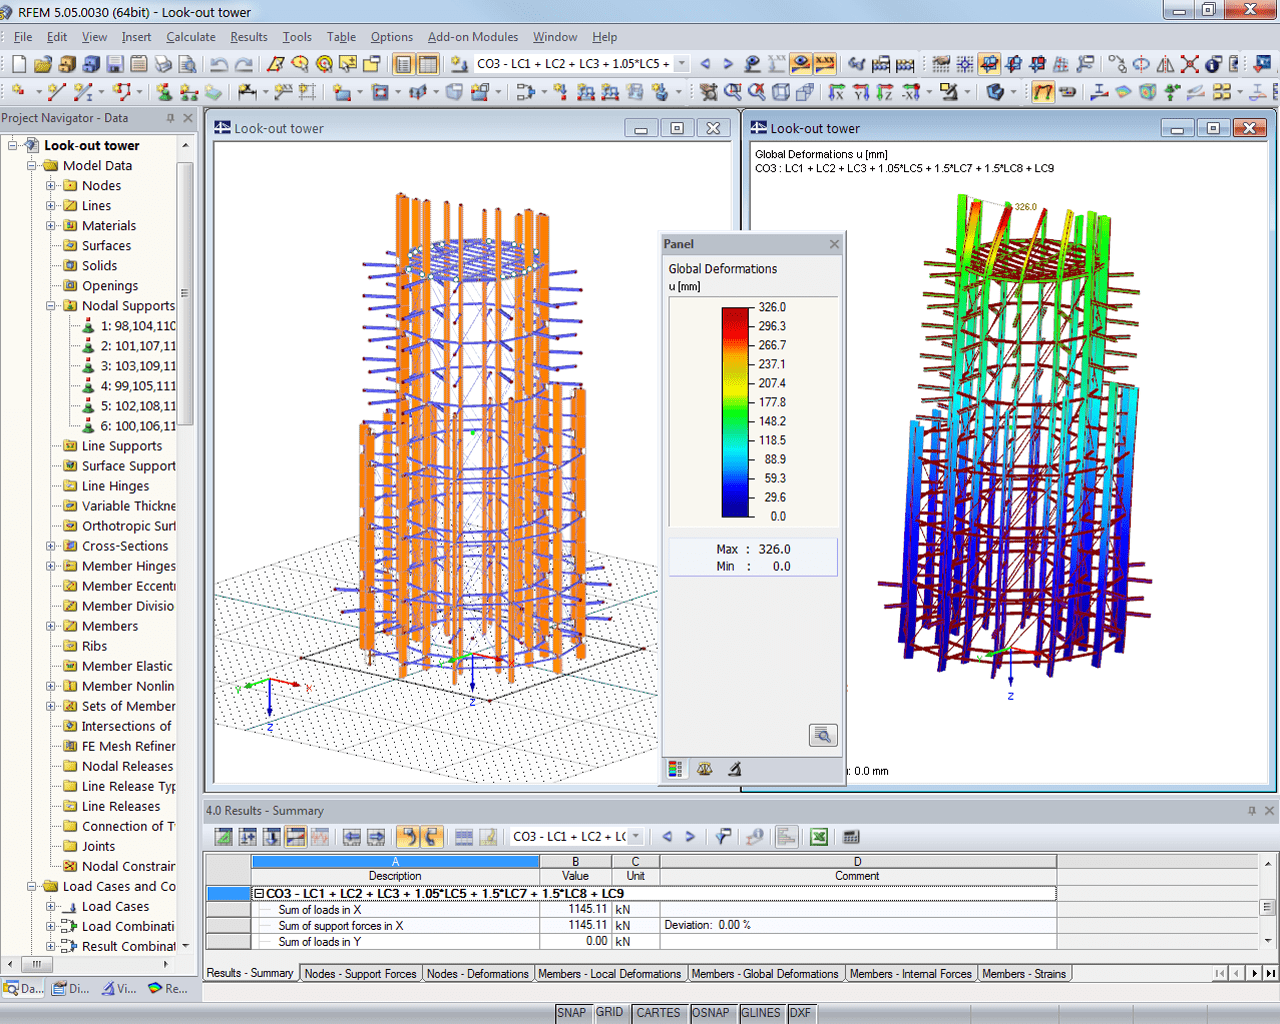 3D model of the look-out tower and deformation in RFEM